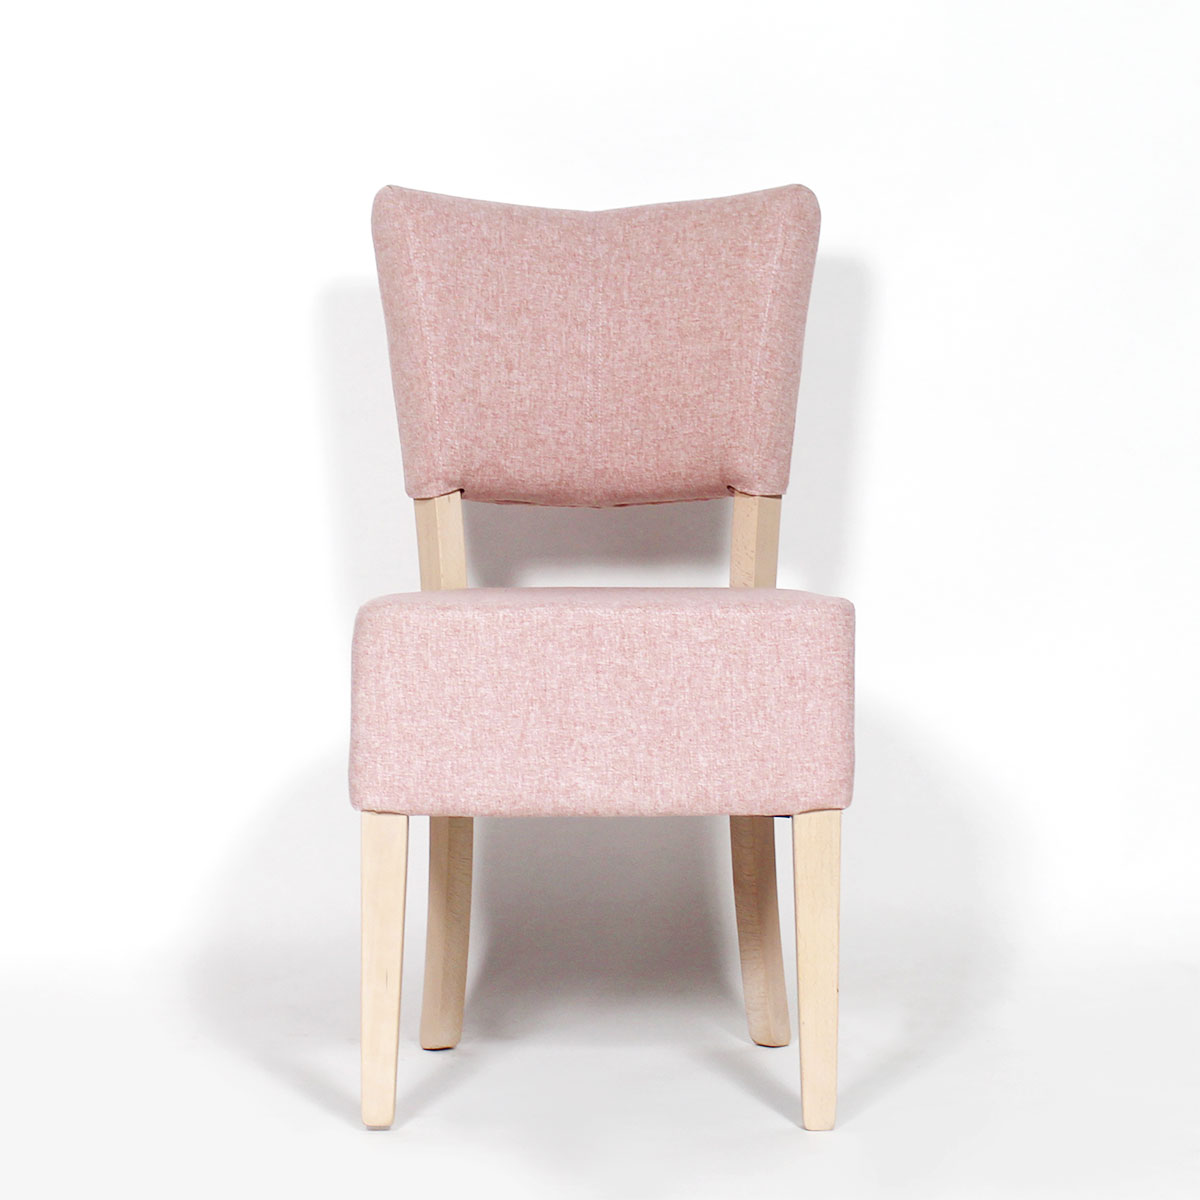 Chaise style fauteuil rose